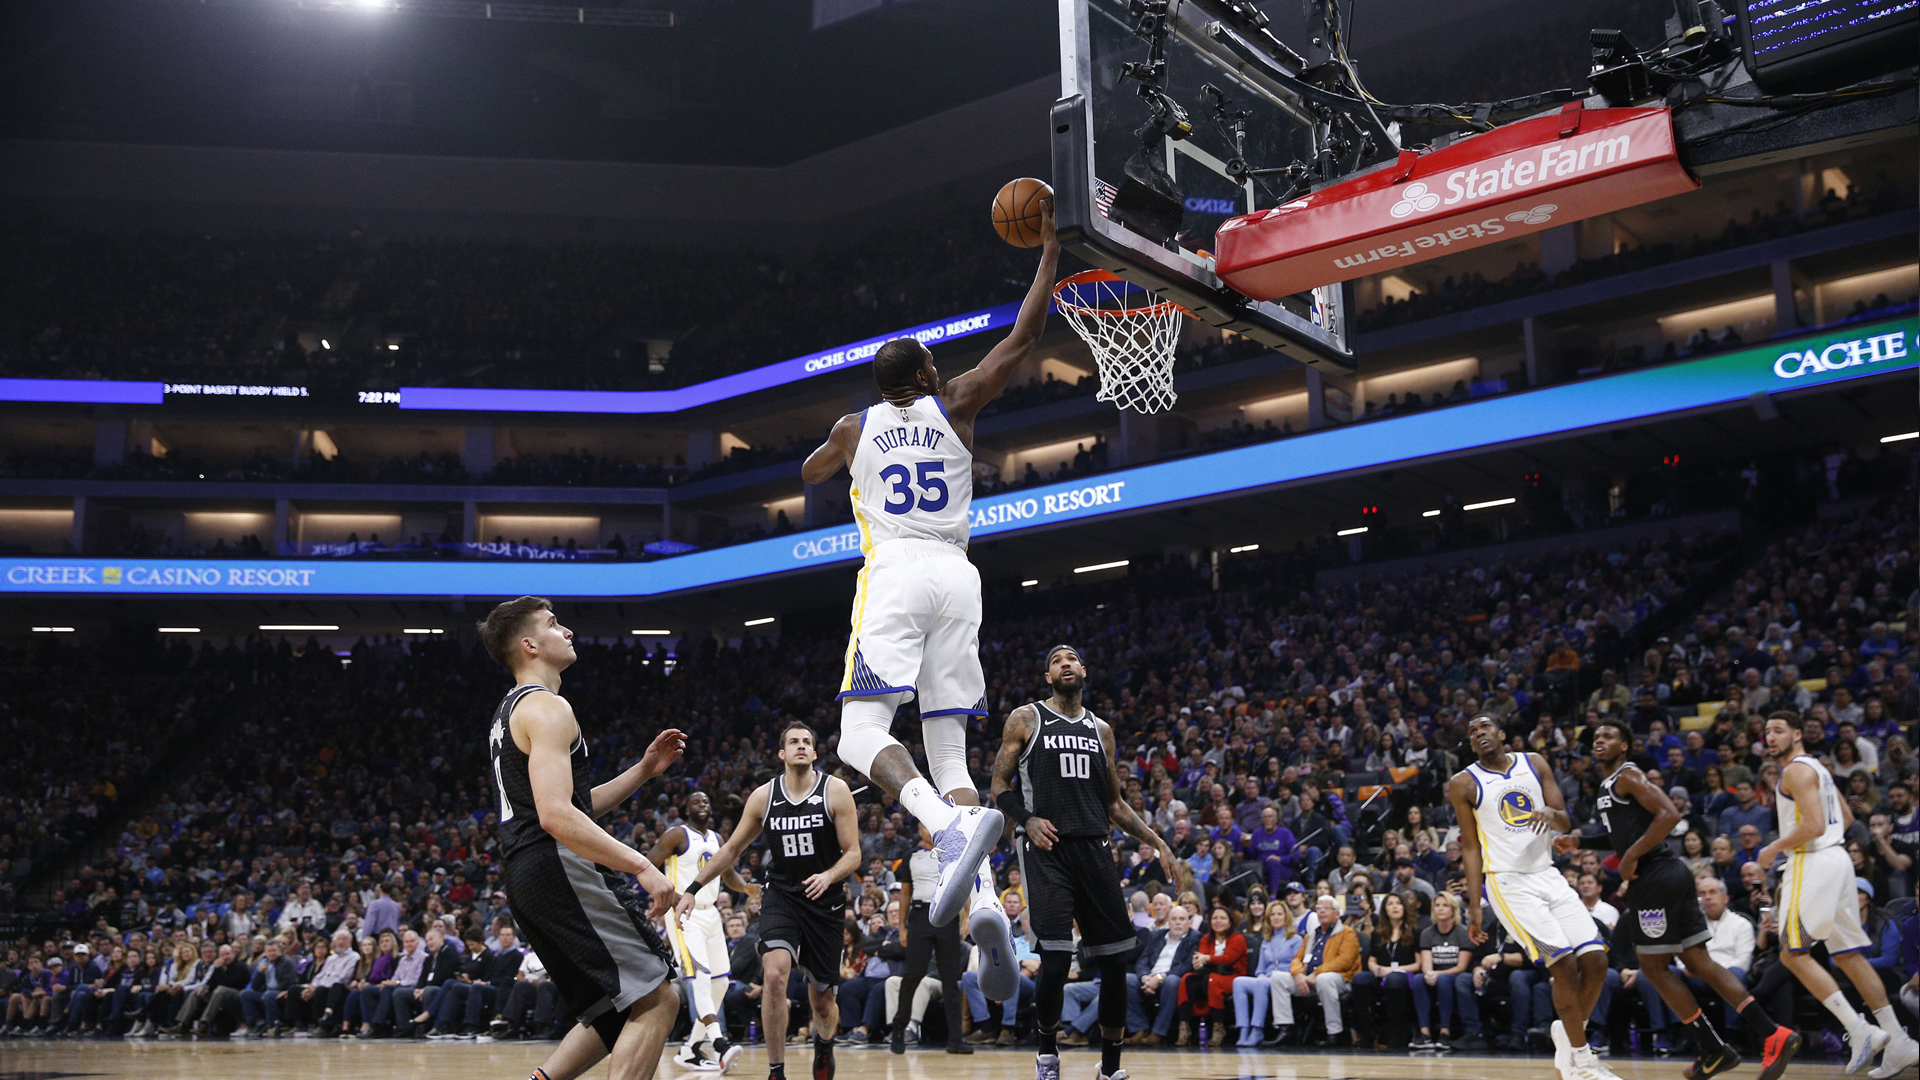 3a2c4dd58 Kings deaaron fox gets two steals and two breakaway dunks within jpg  1920x1080 Nba breakaway shorts